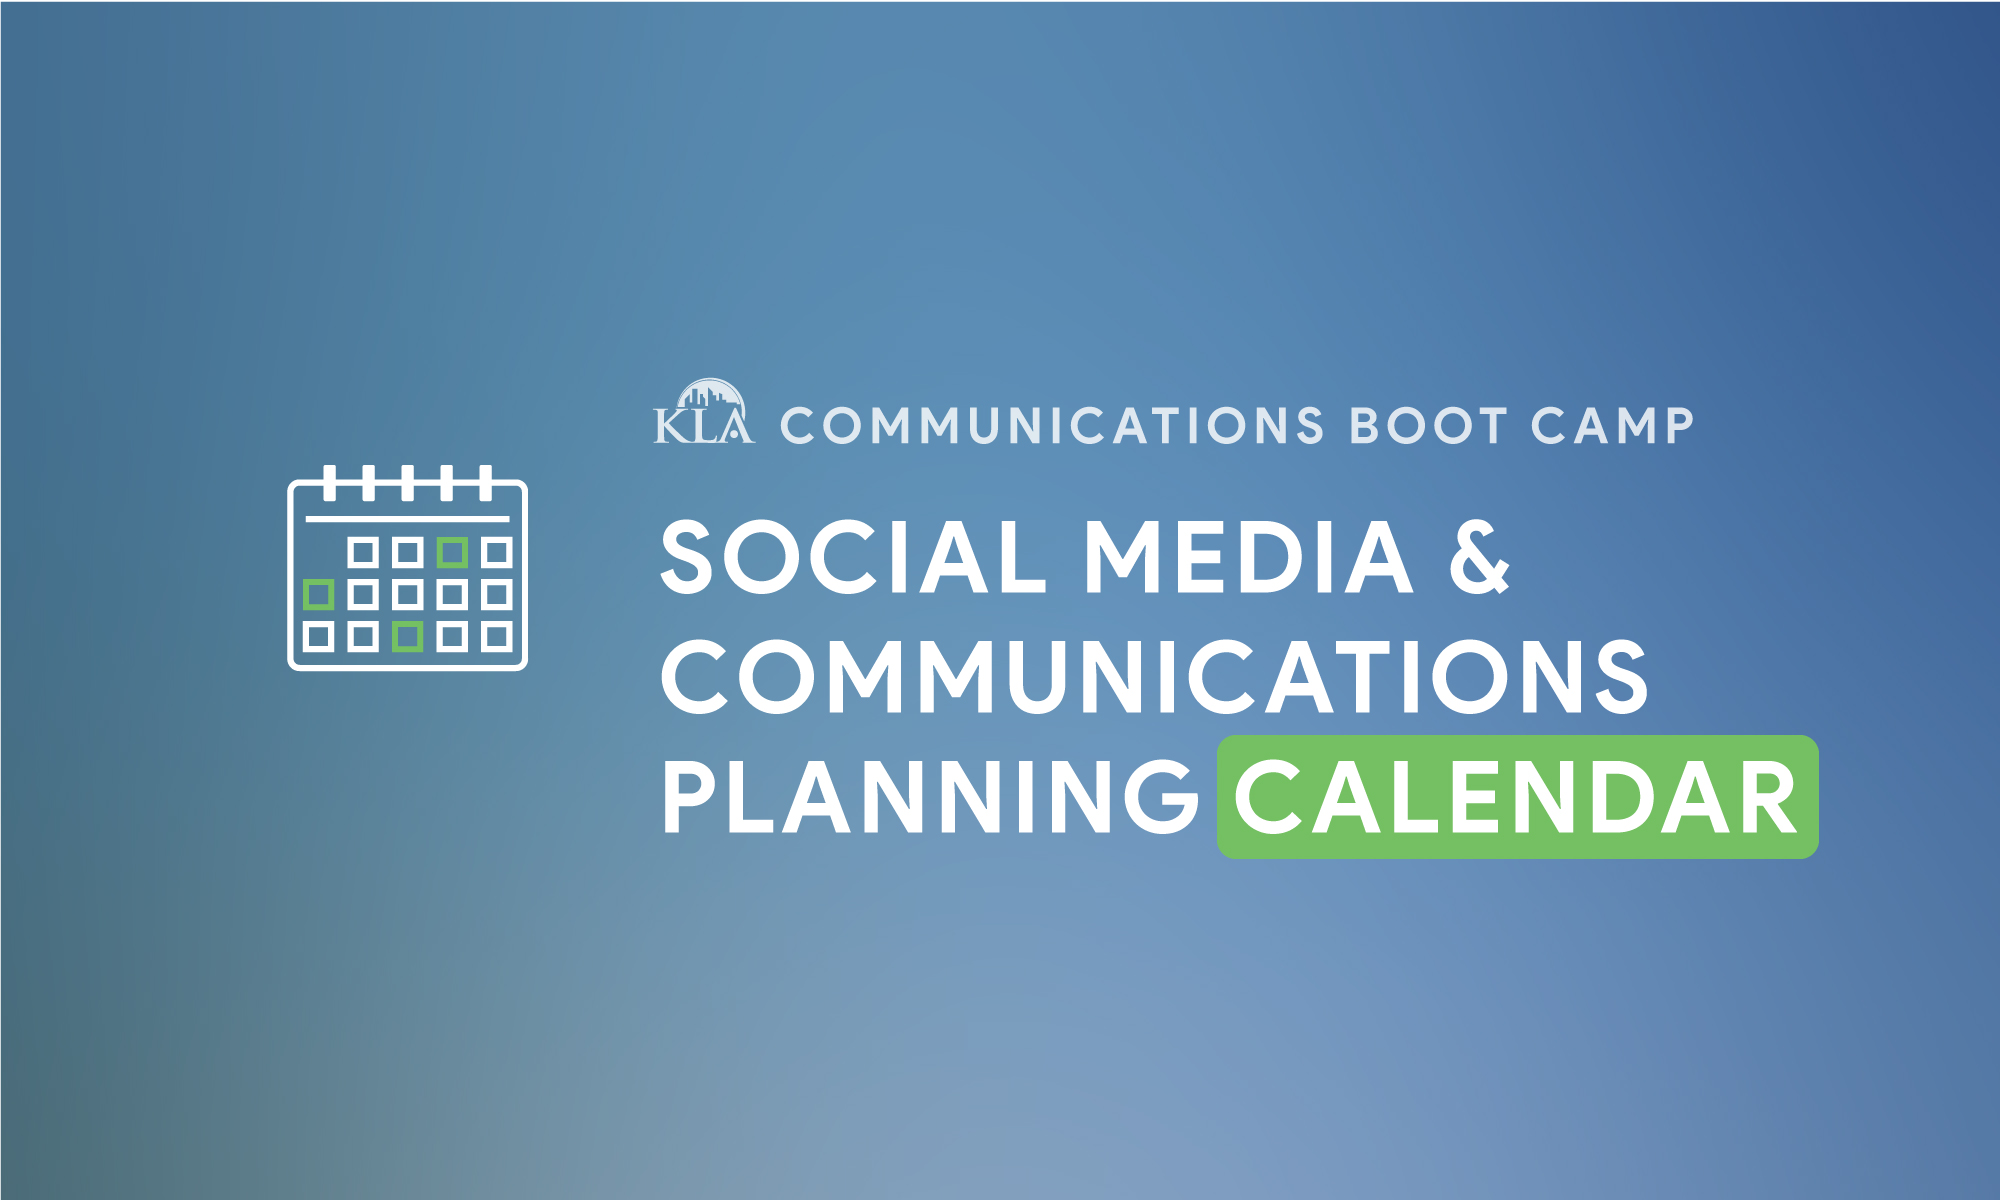 Social Media and Communications Boot Camp